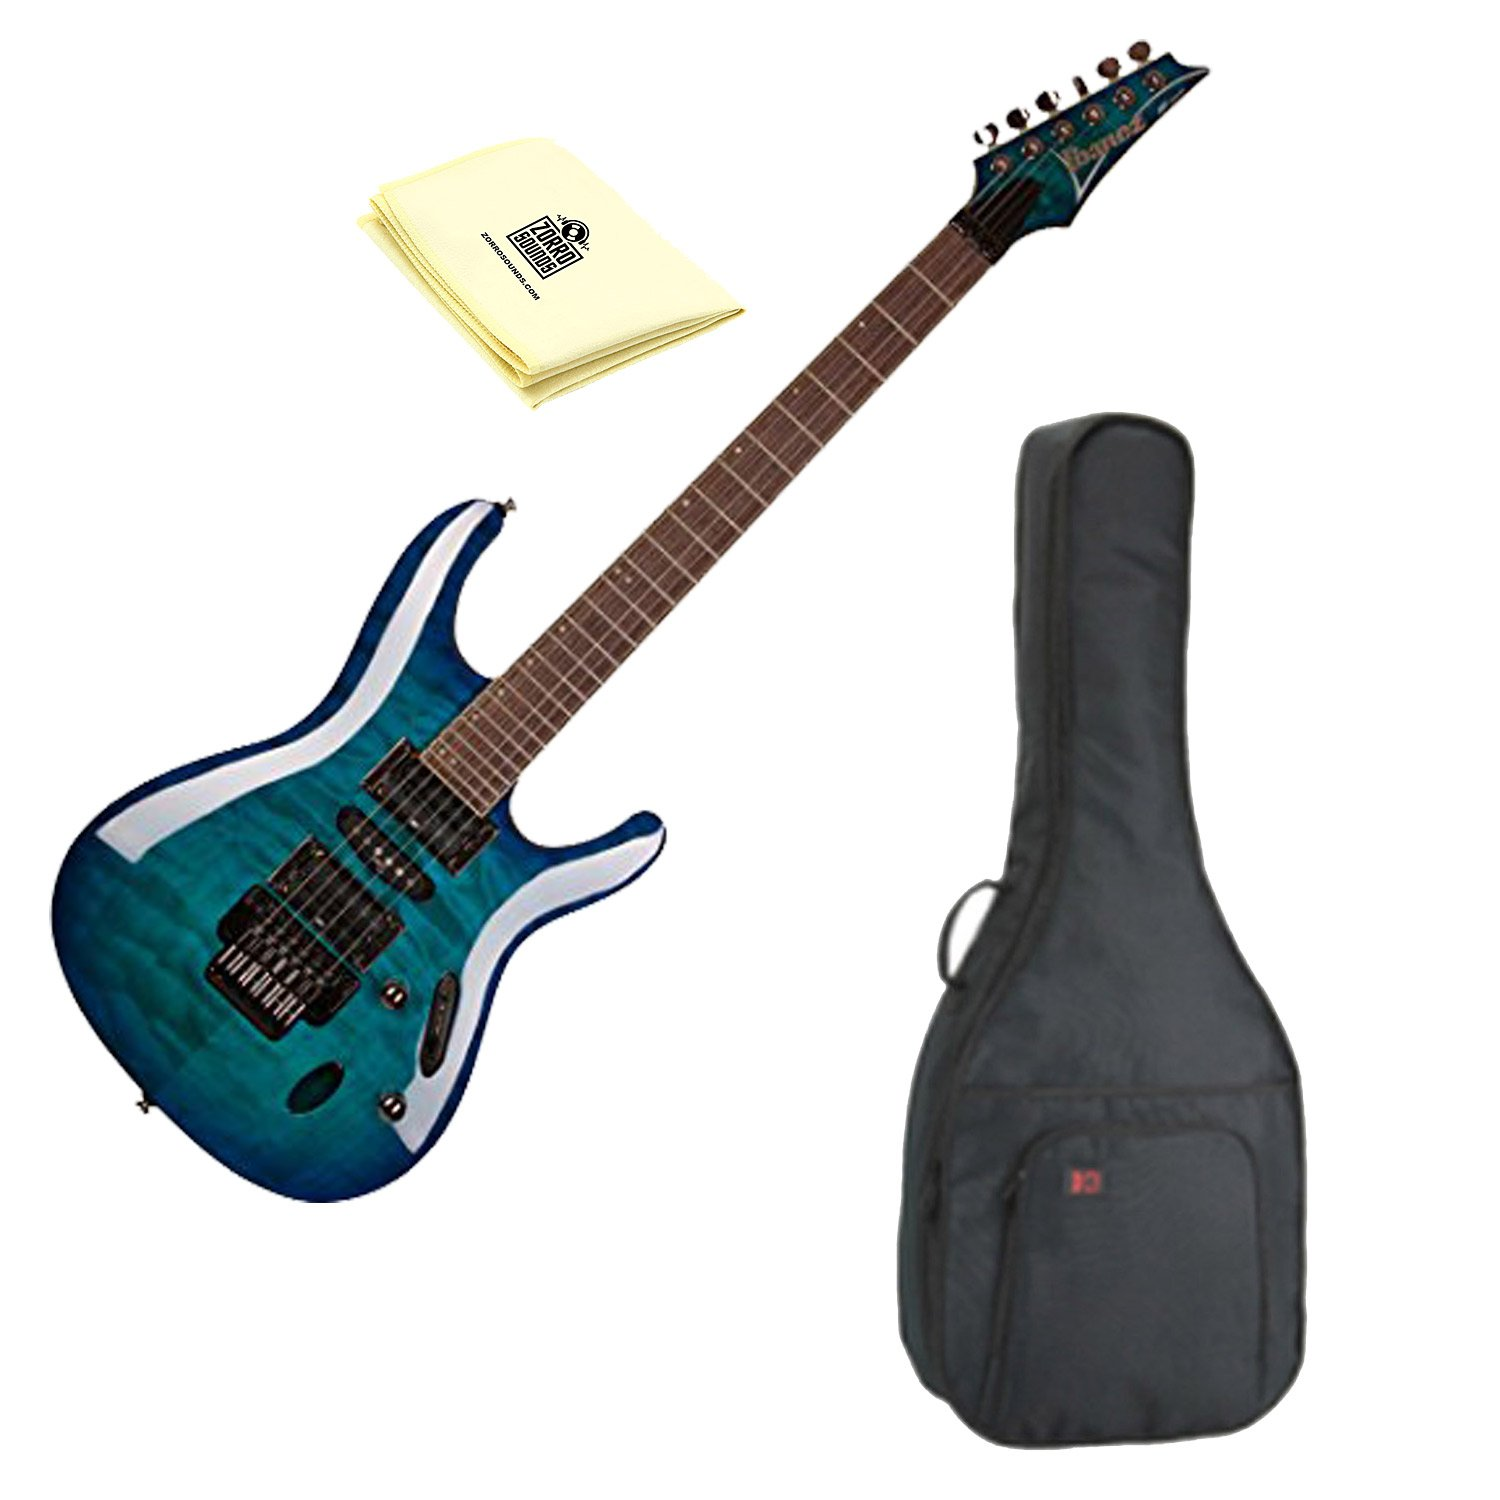 Cheap Ibanez S670QM S Series Solid Body Electric Guitar Sapphire Blue with Kaces KQA-120 GigPak Acoustic Guitar Bag and Custom Designed Instrument Cloth Black Friday & Cyber Monday 2019